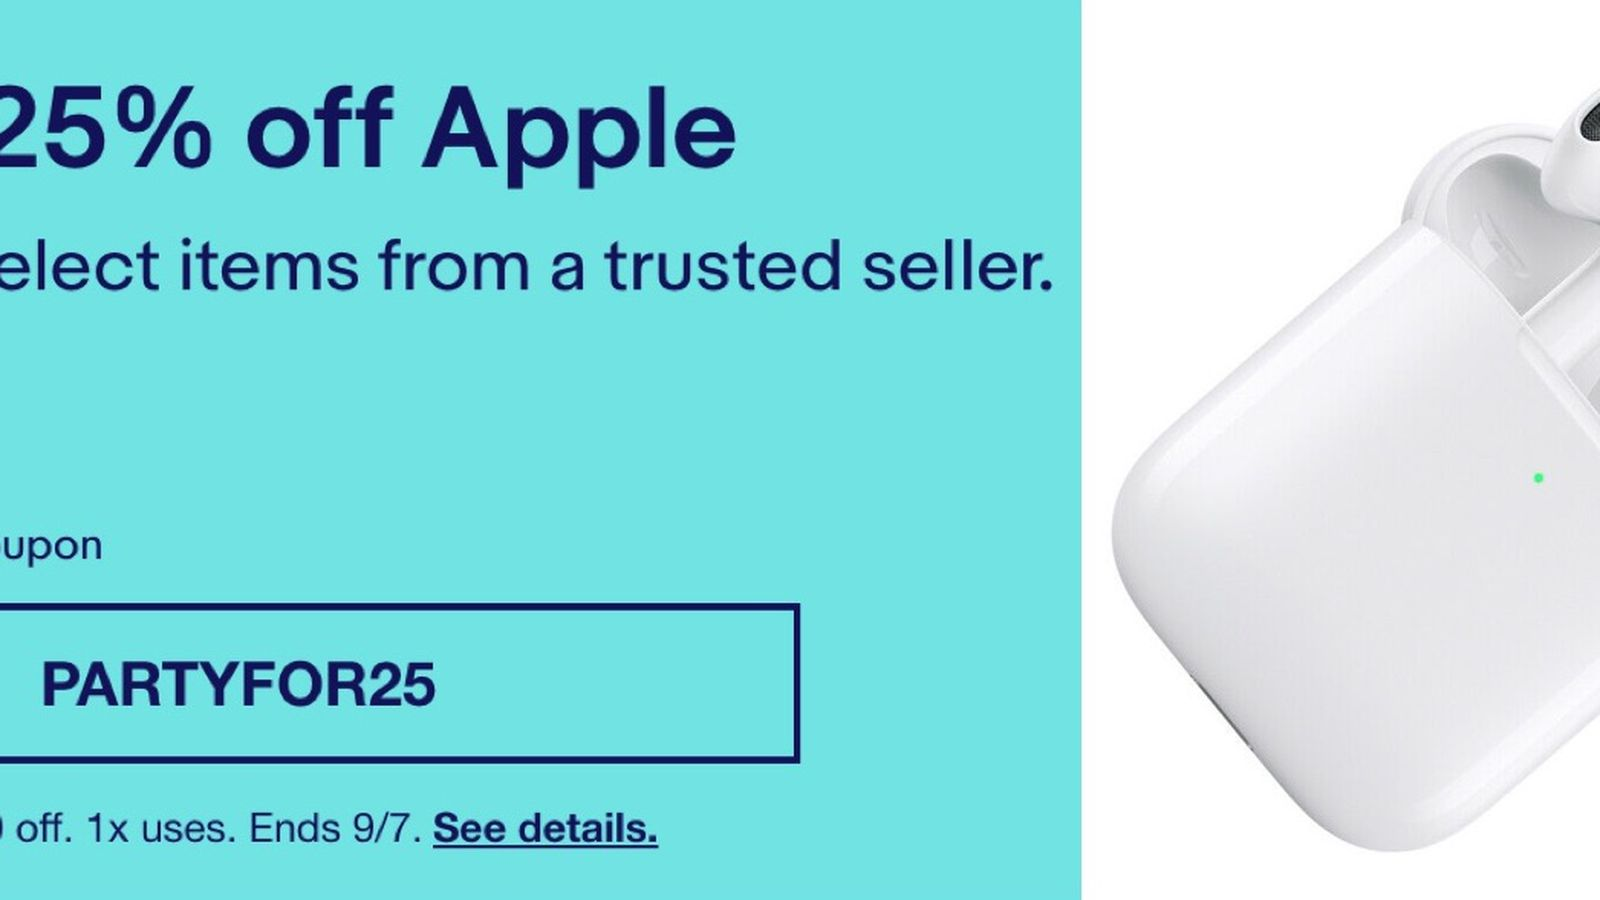 Deals Ebay S New Coupon Takes 25 Off Select Brands Including Apple Beats And More Macrumors